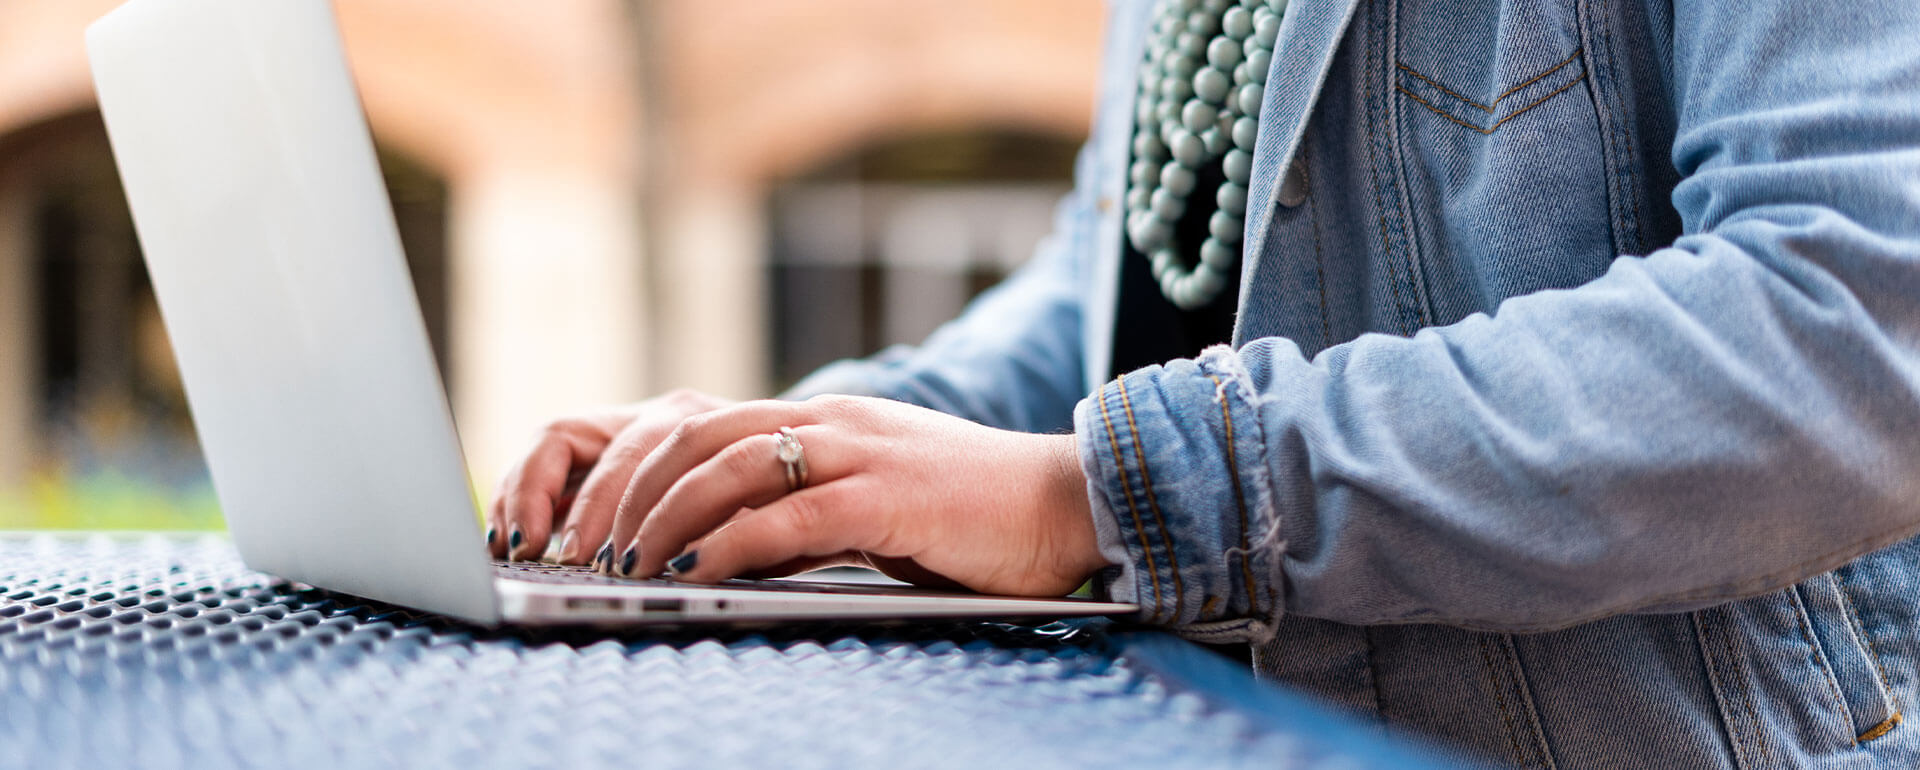 A female student types on a laptop.